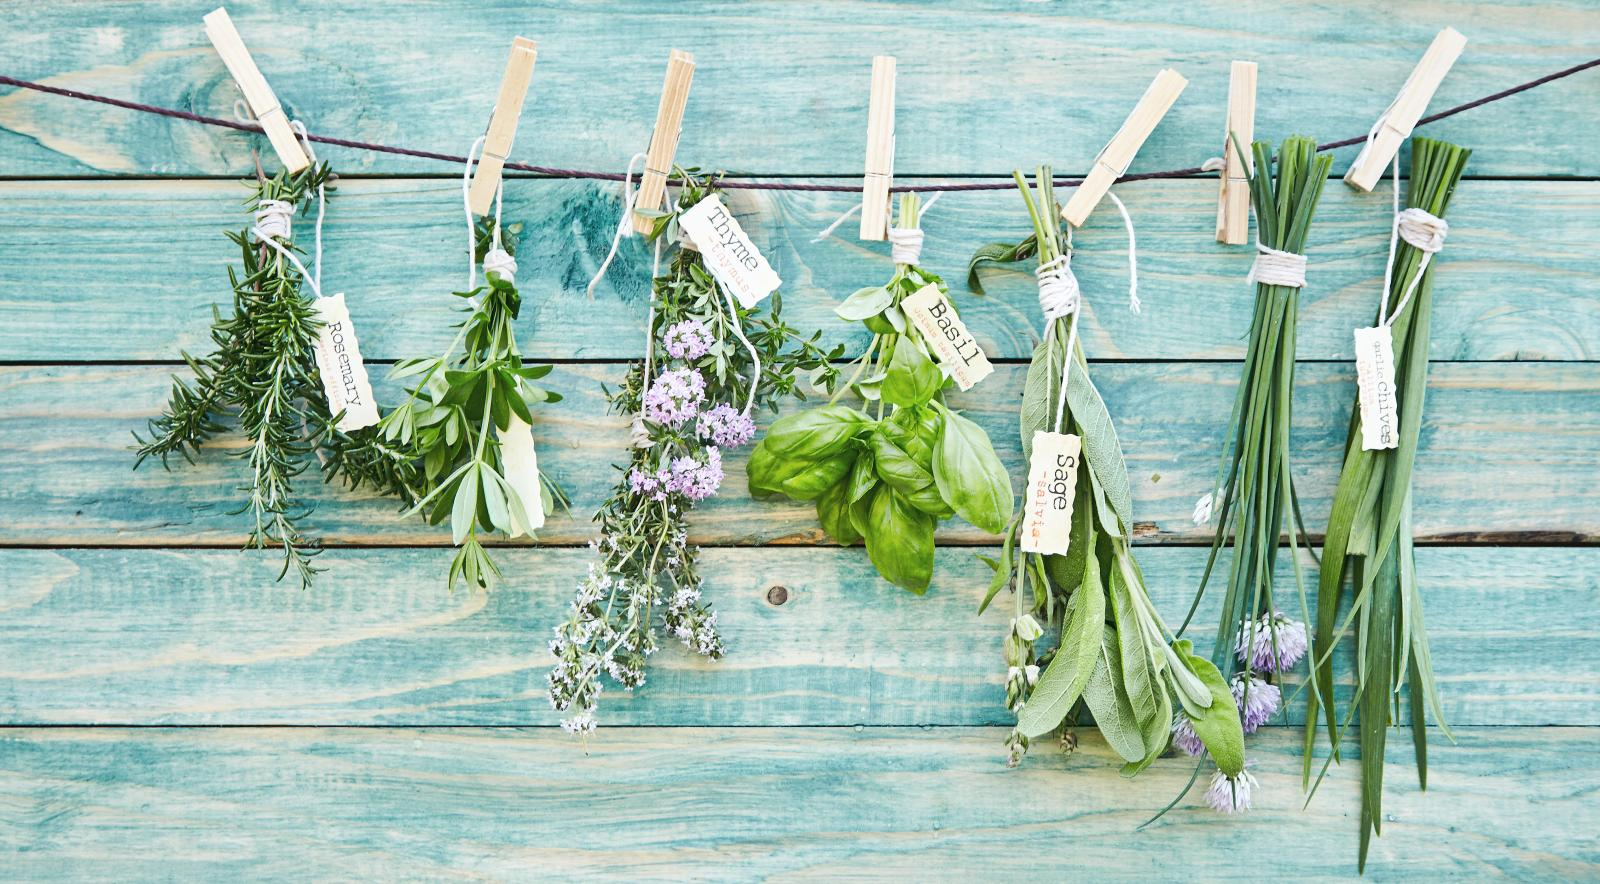 Cutting and hanging herbs to dry